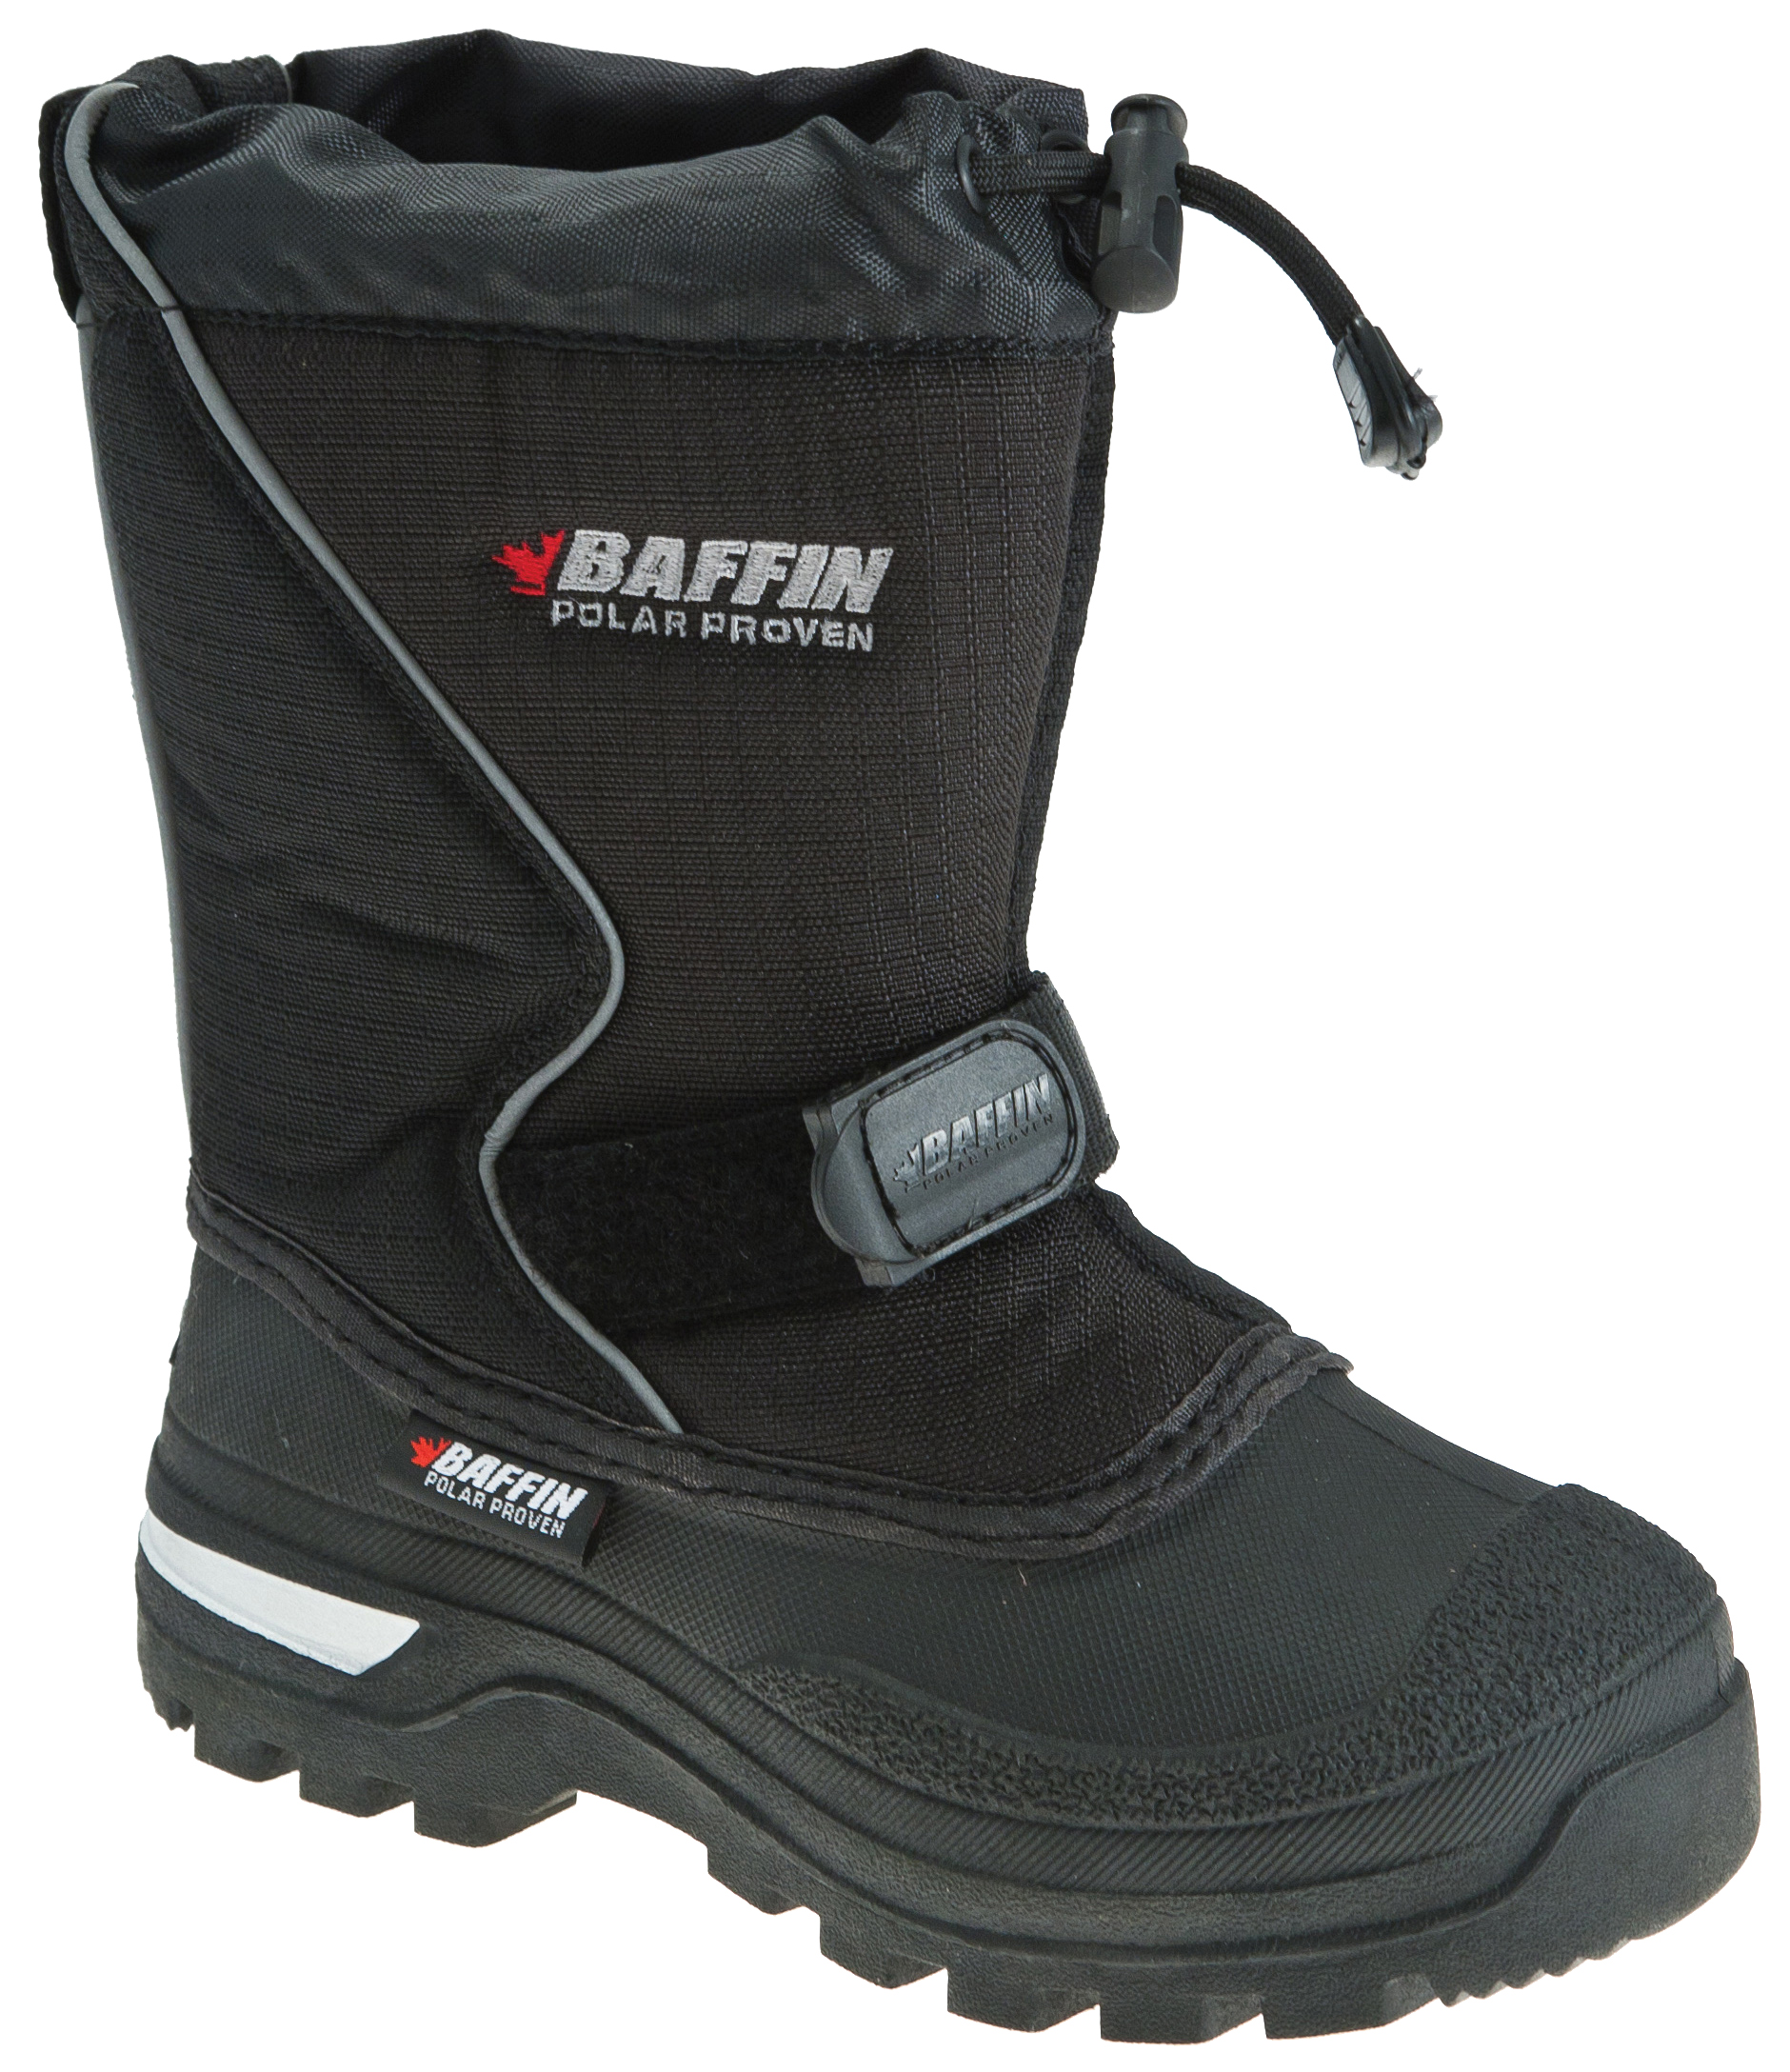 d60dbdf91ab Baffin Mustang Winter Boots - Children to Youths